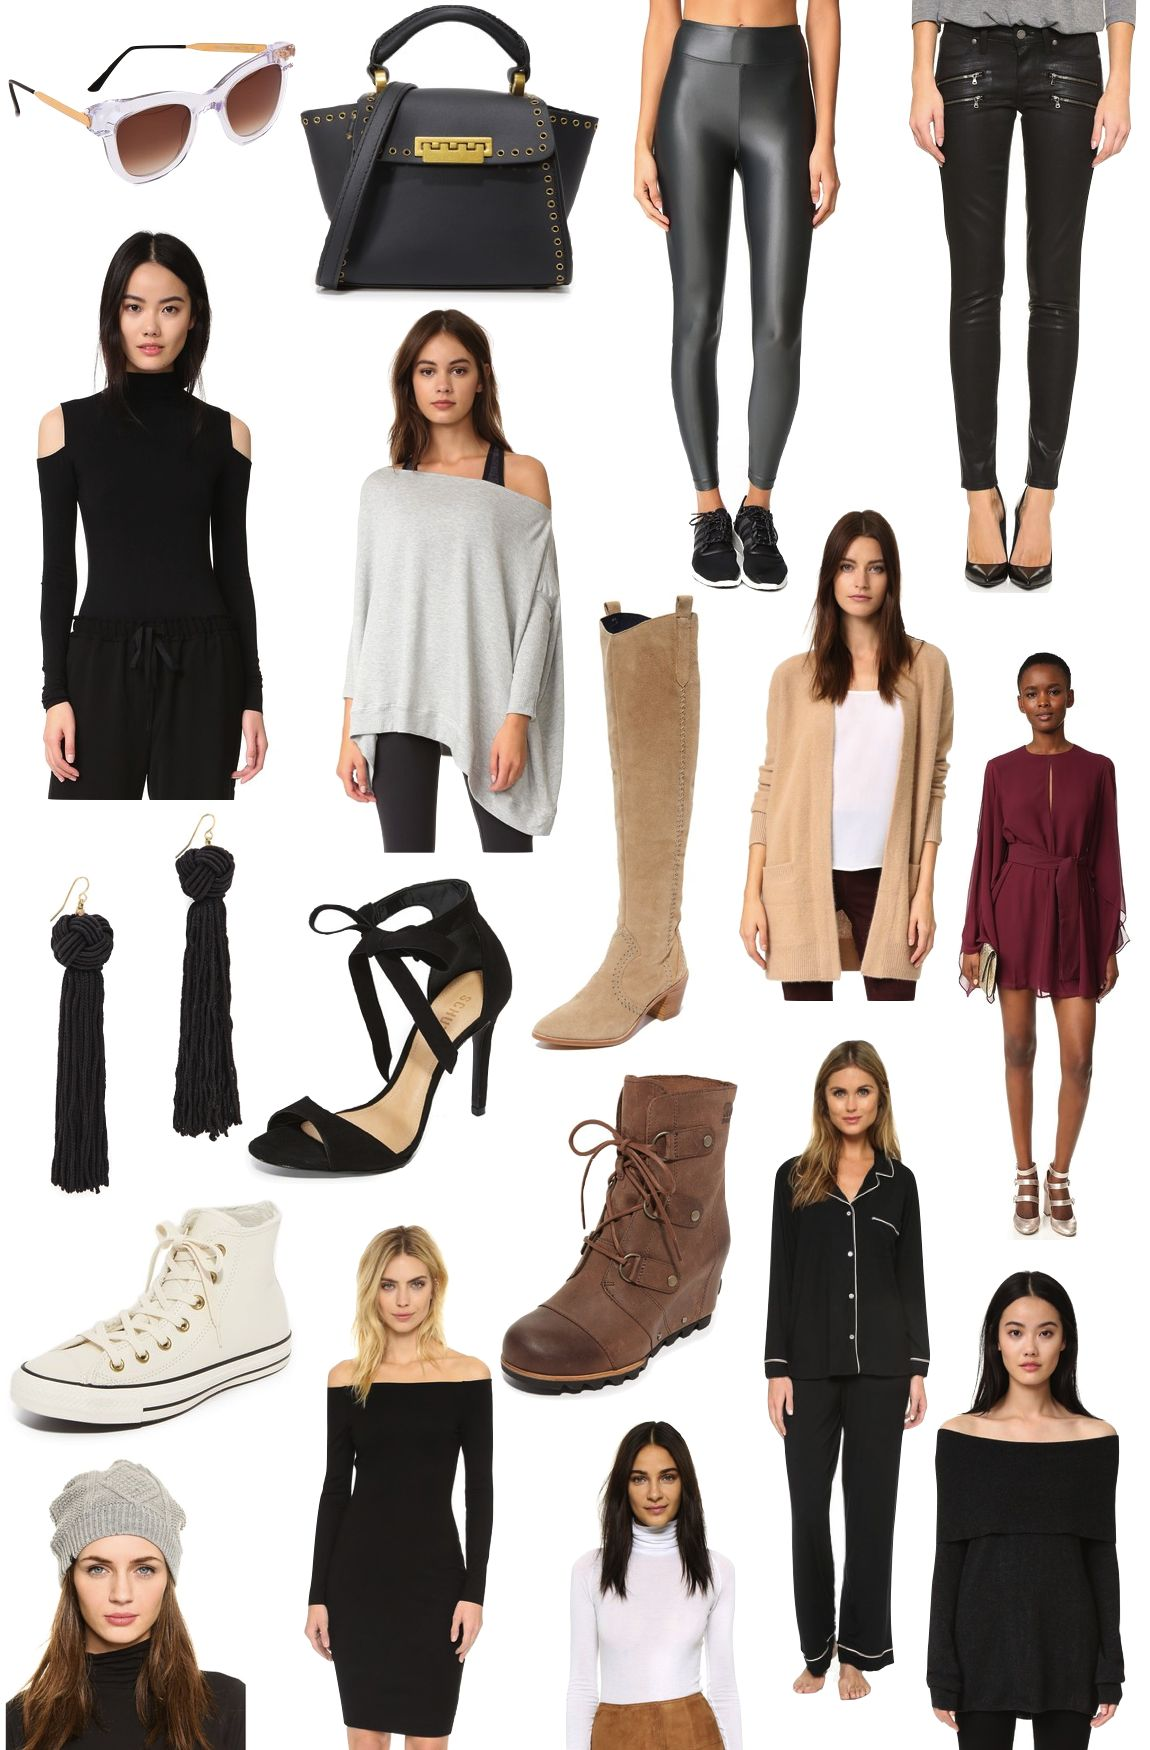 SHOPBOP MAIN EVENT | Kiki's List